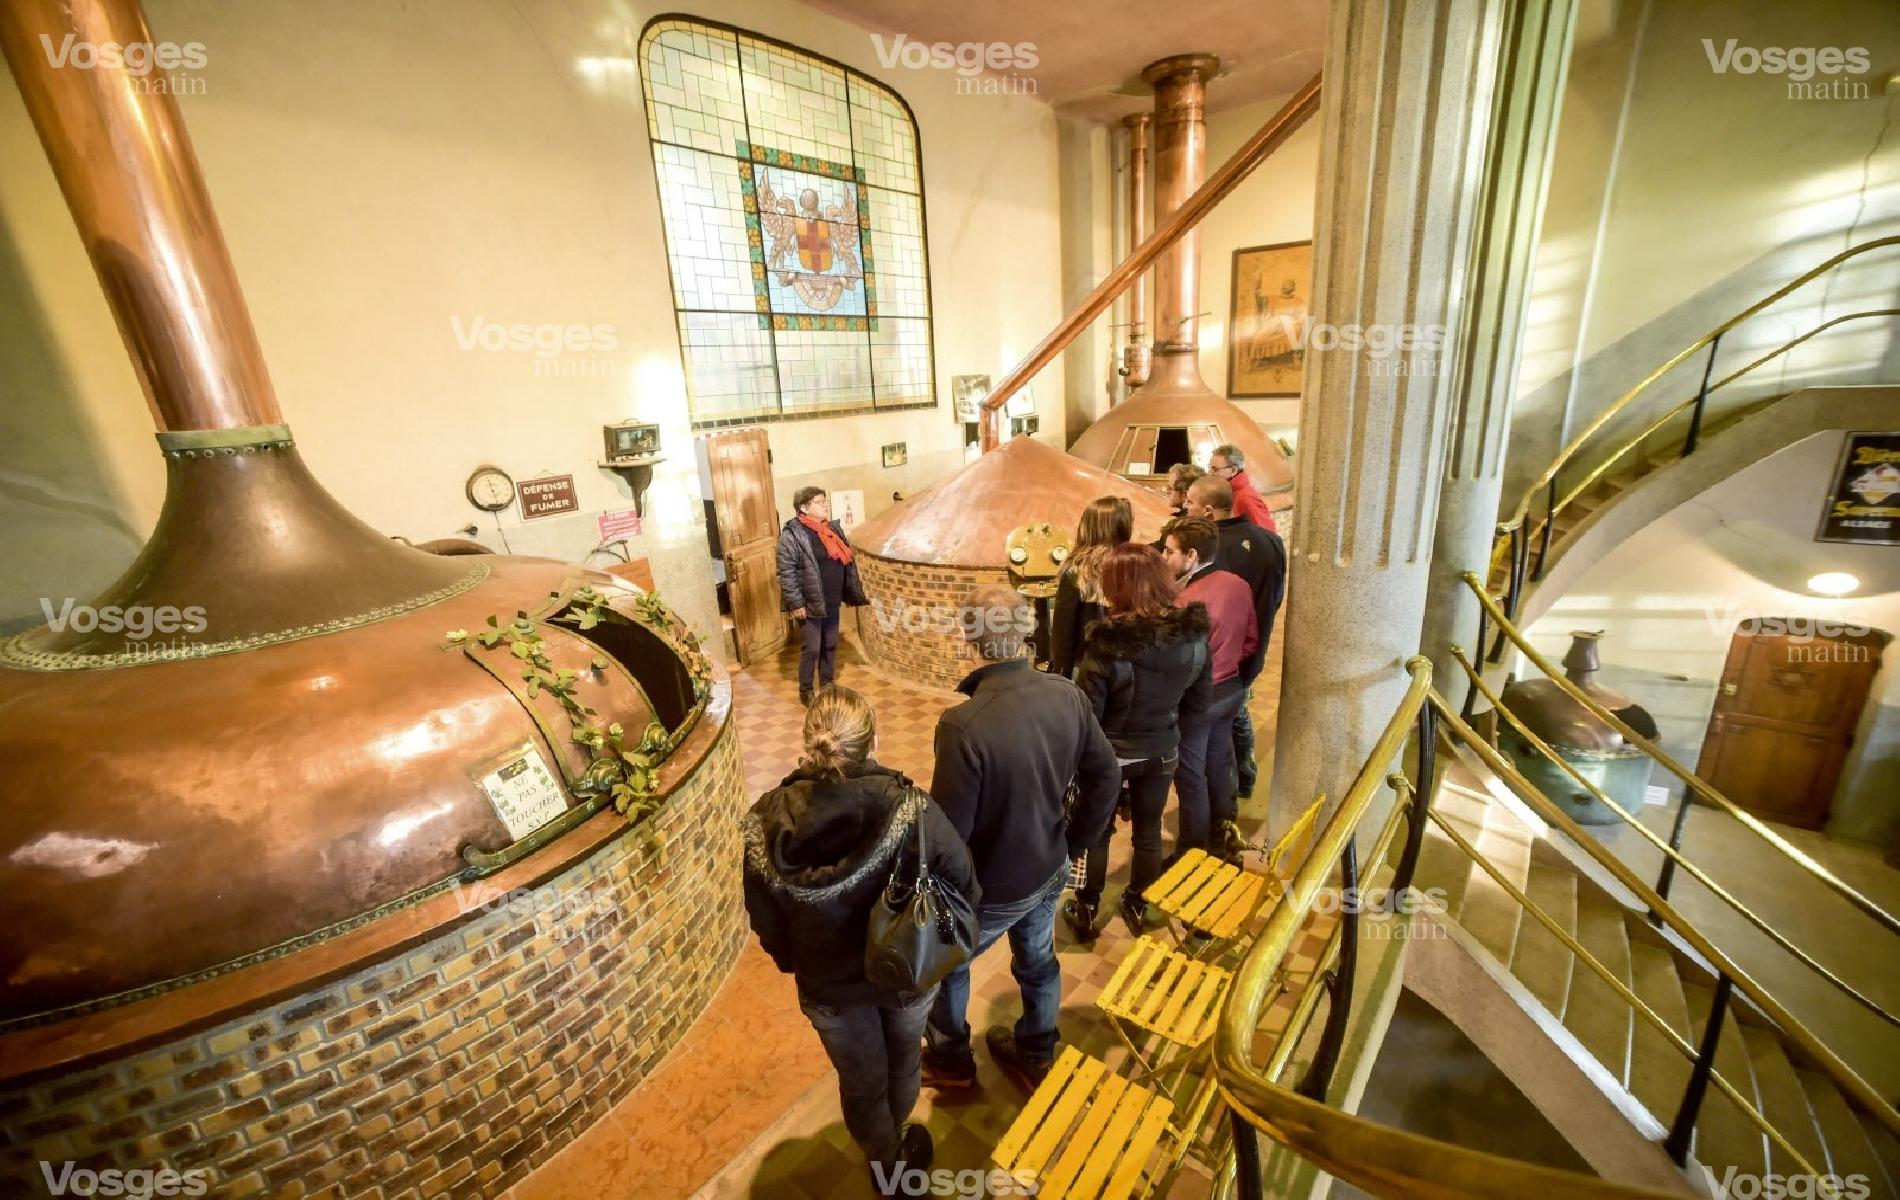 Illon and its eco brewery museum